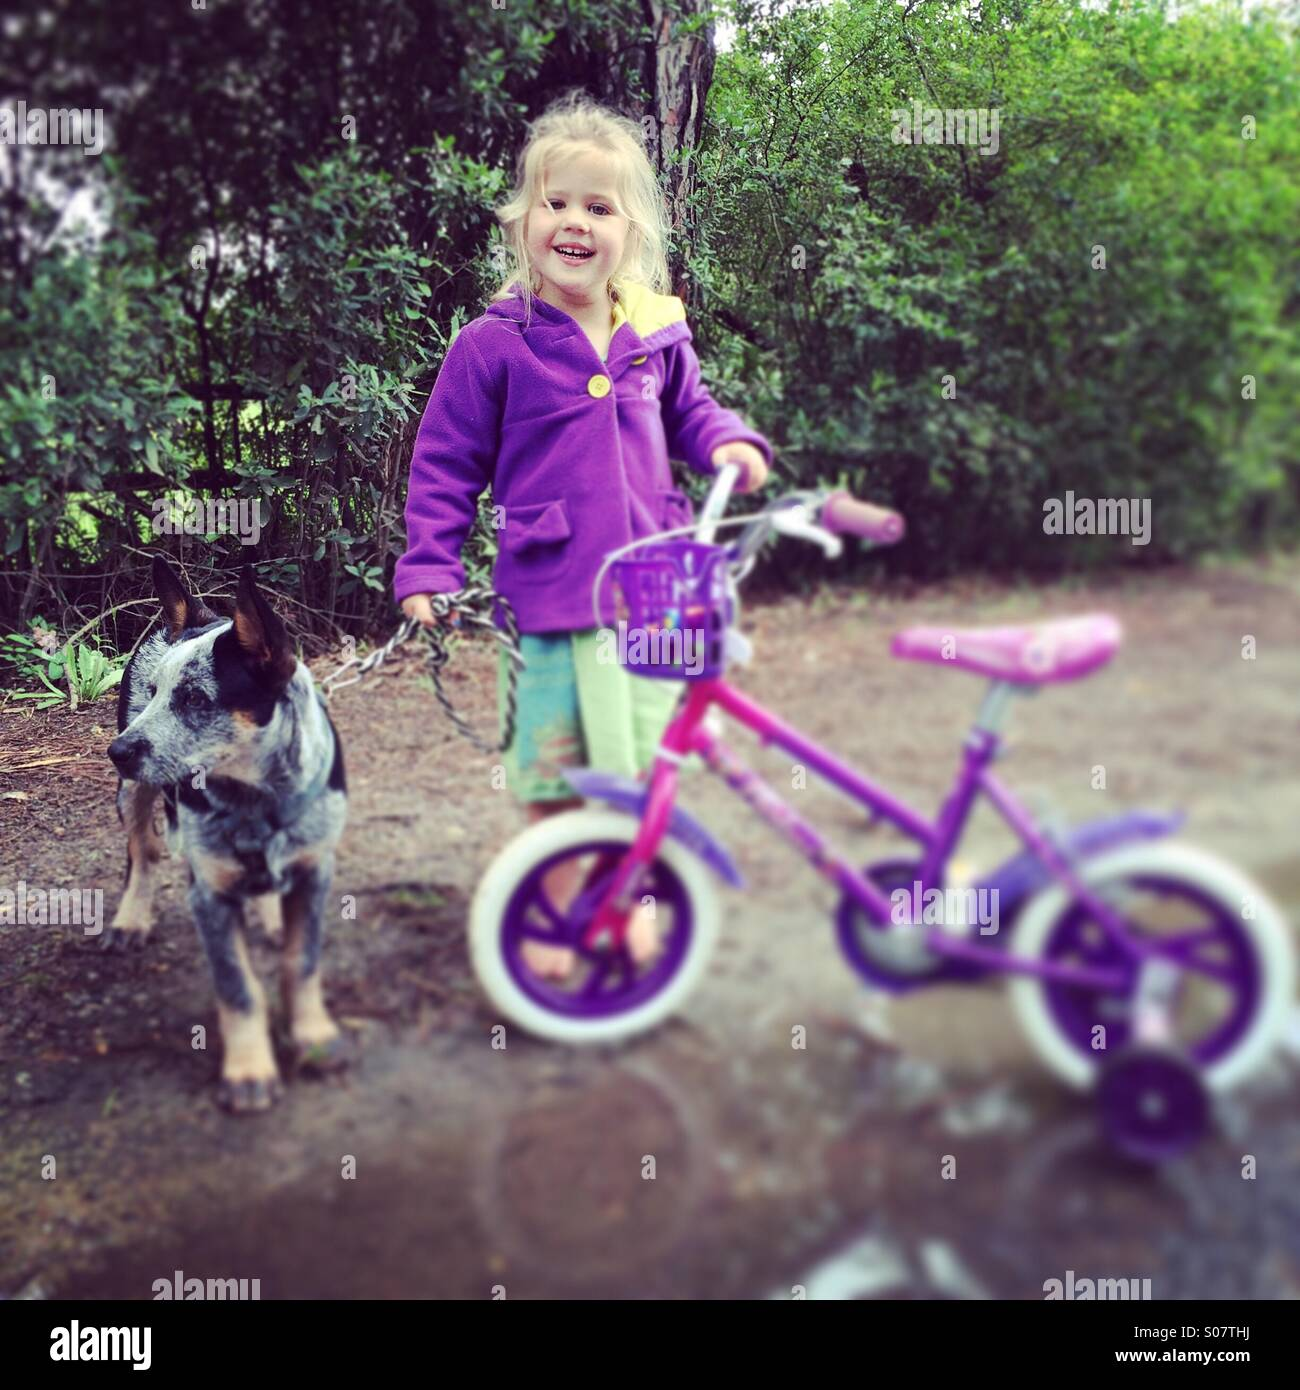 Walkabout with dog and bicycle - Stock Image